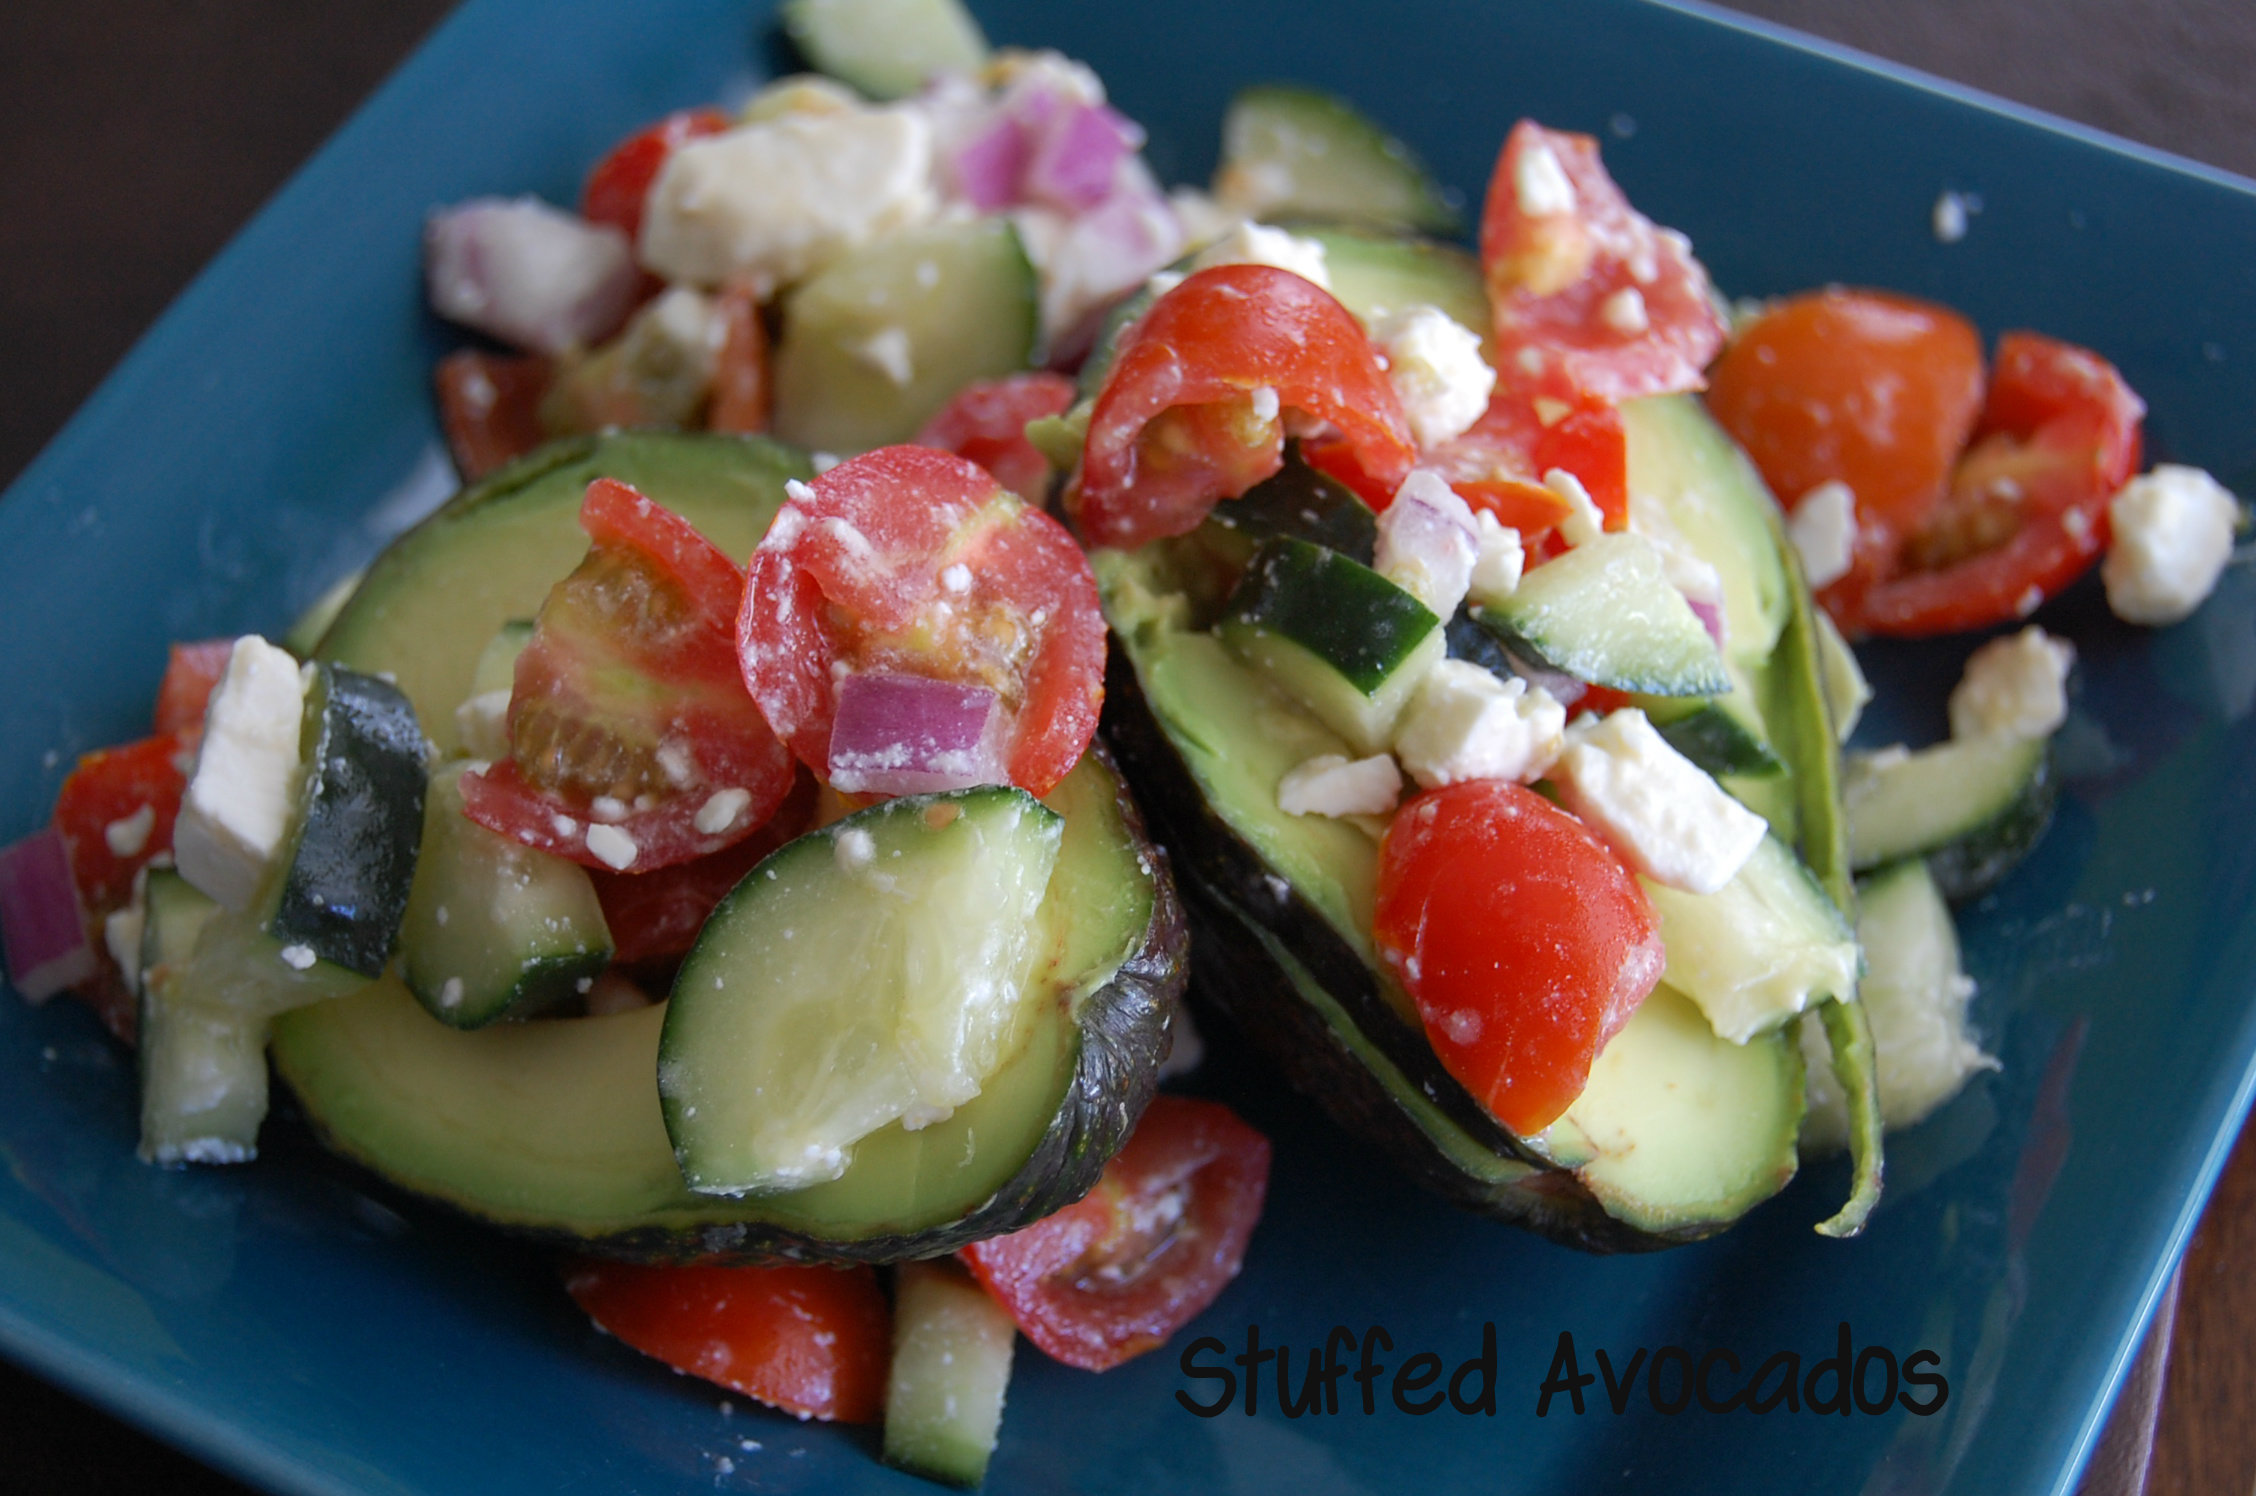 Stuffed Avocados | Who Needs A Cape?